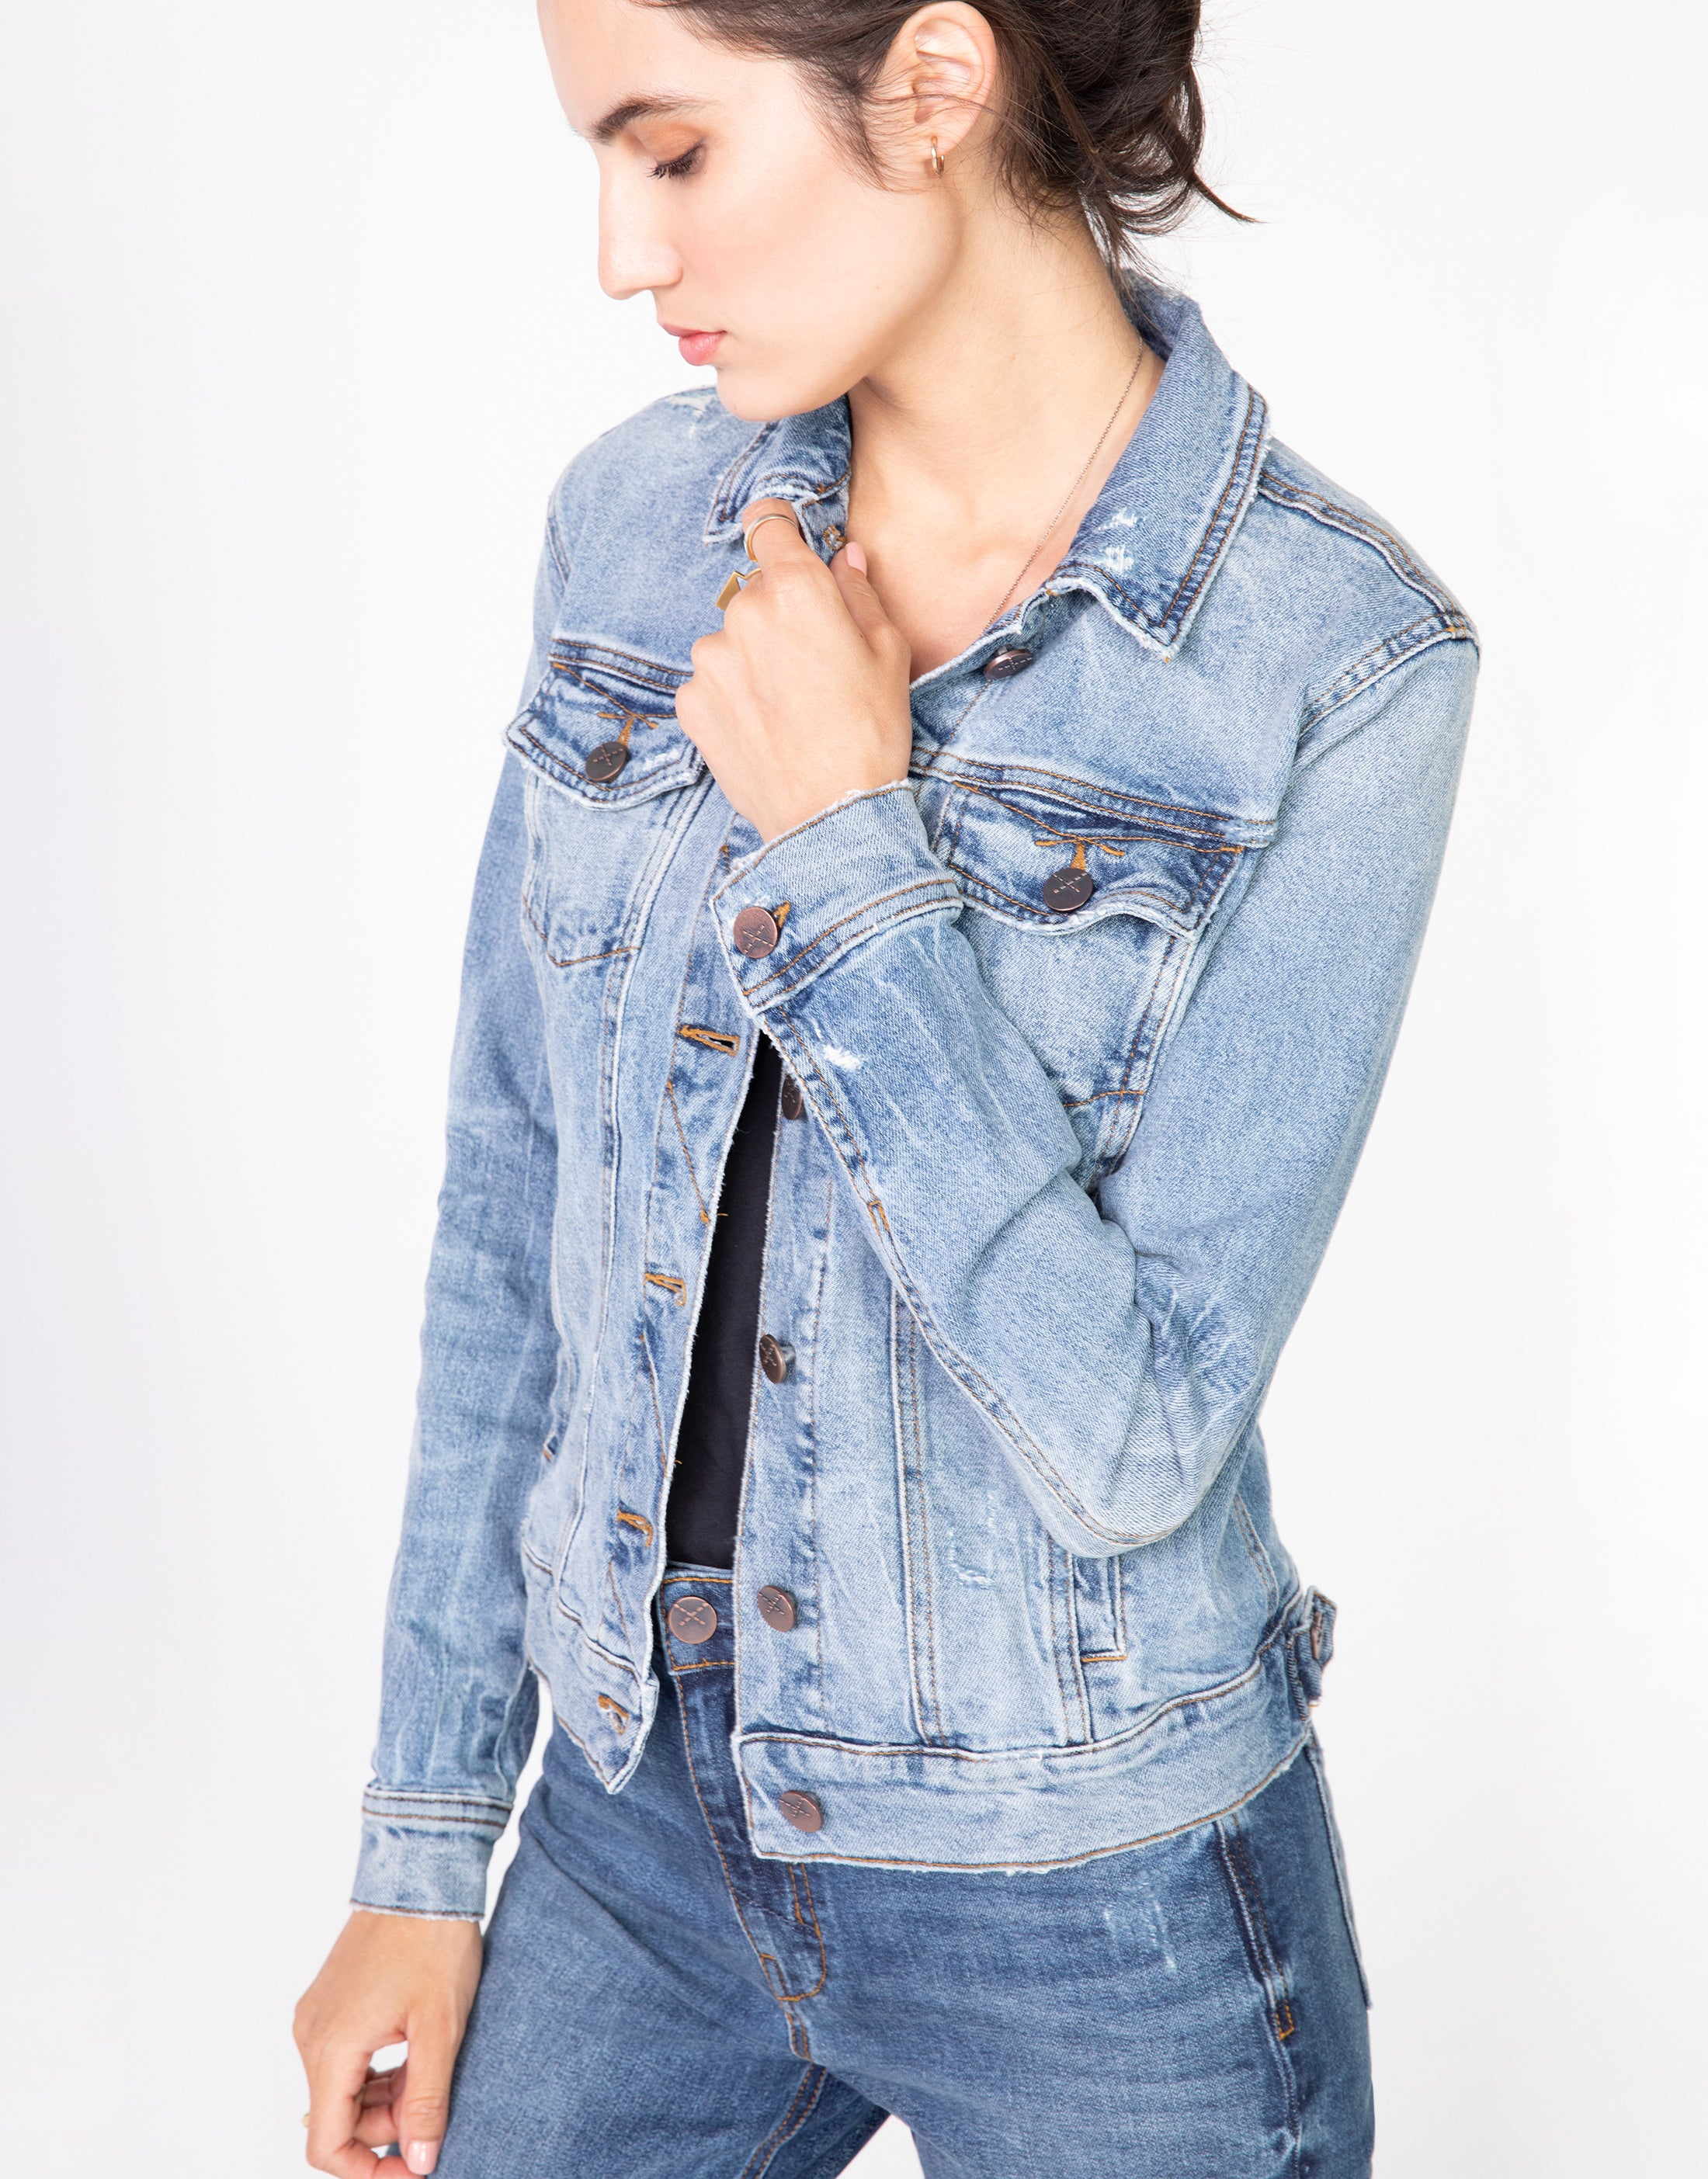 ABBIE Fitted Trucker Jacket in Decades